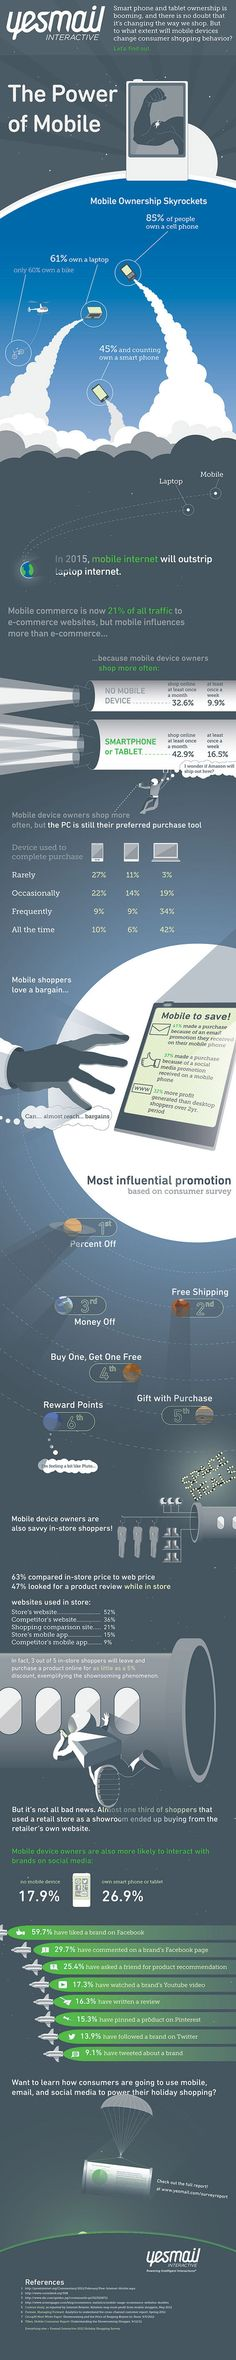 The Power of #Mobile [infographic]